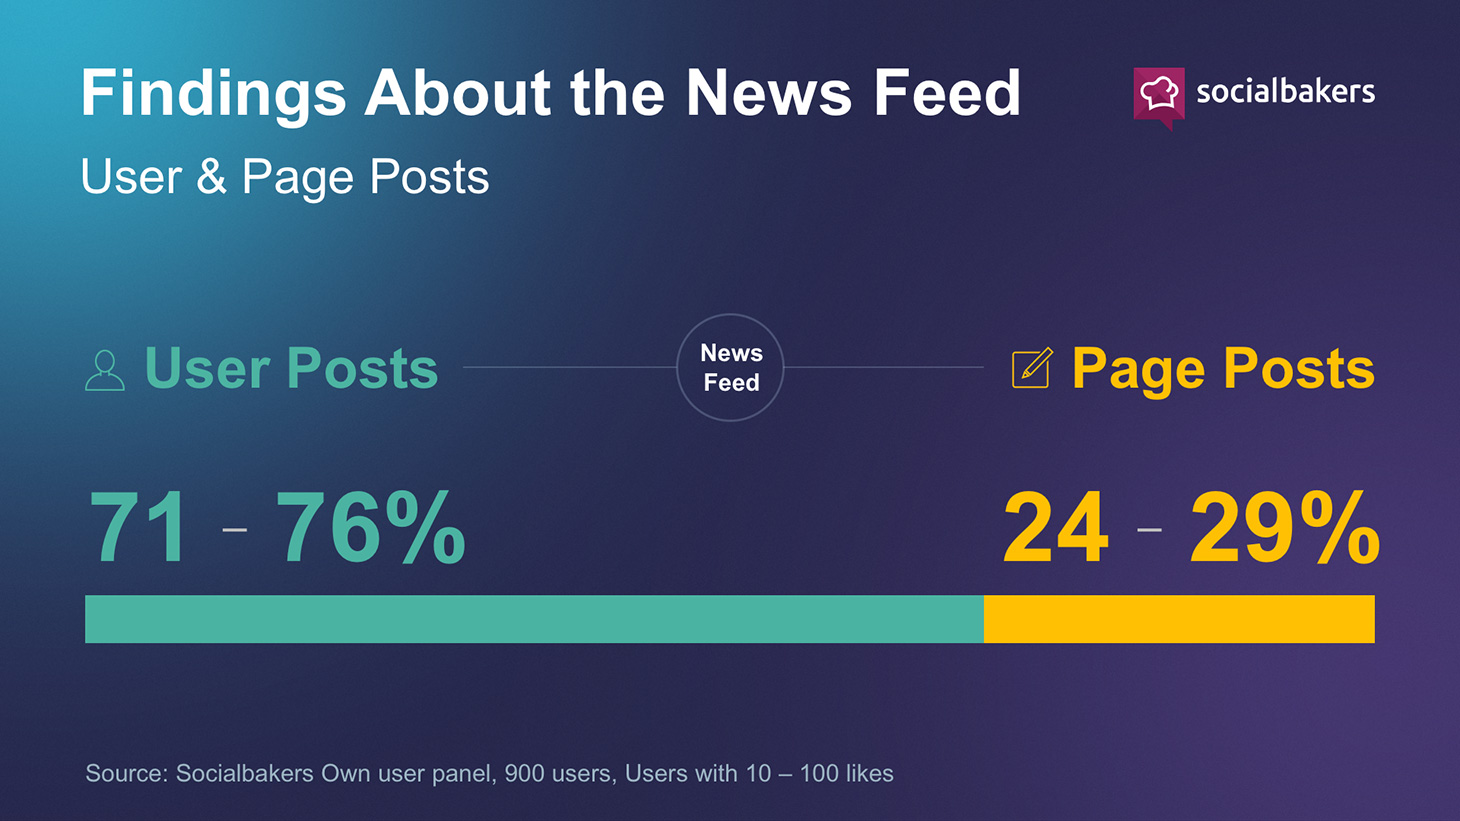 Comment fonctionne le News Feed Facebook